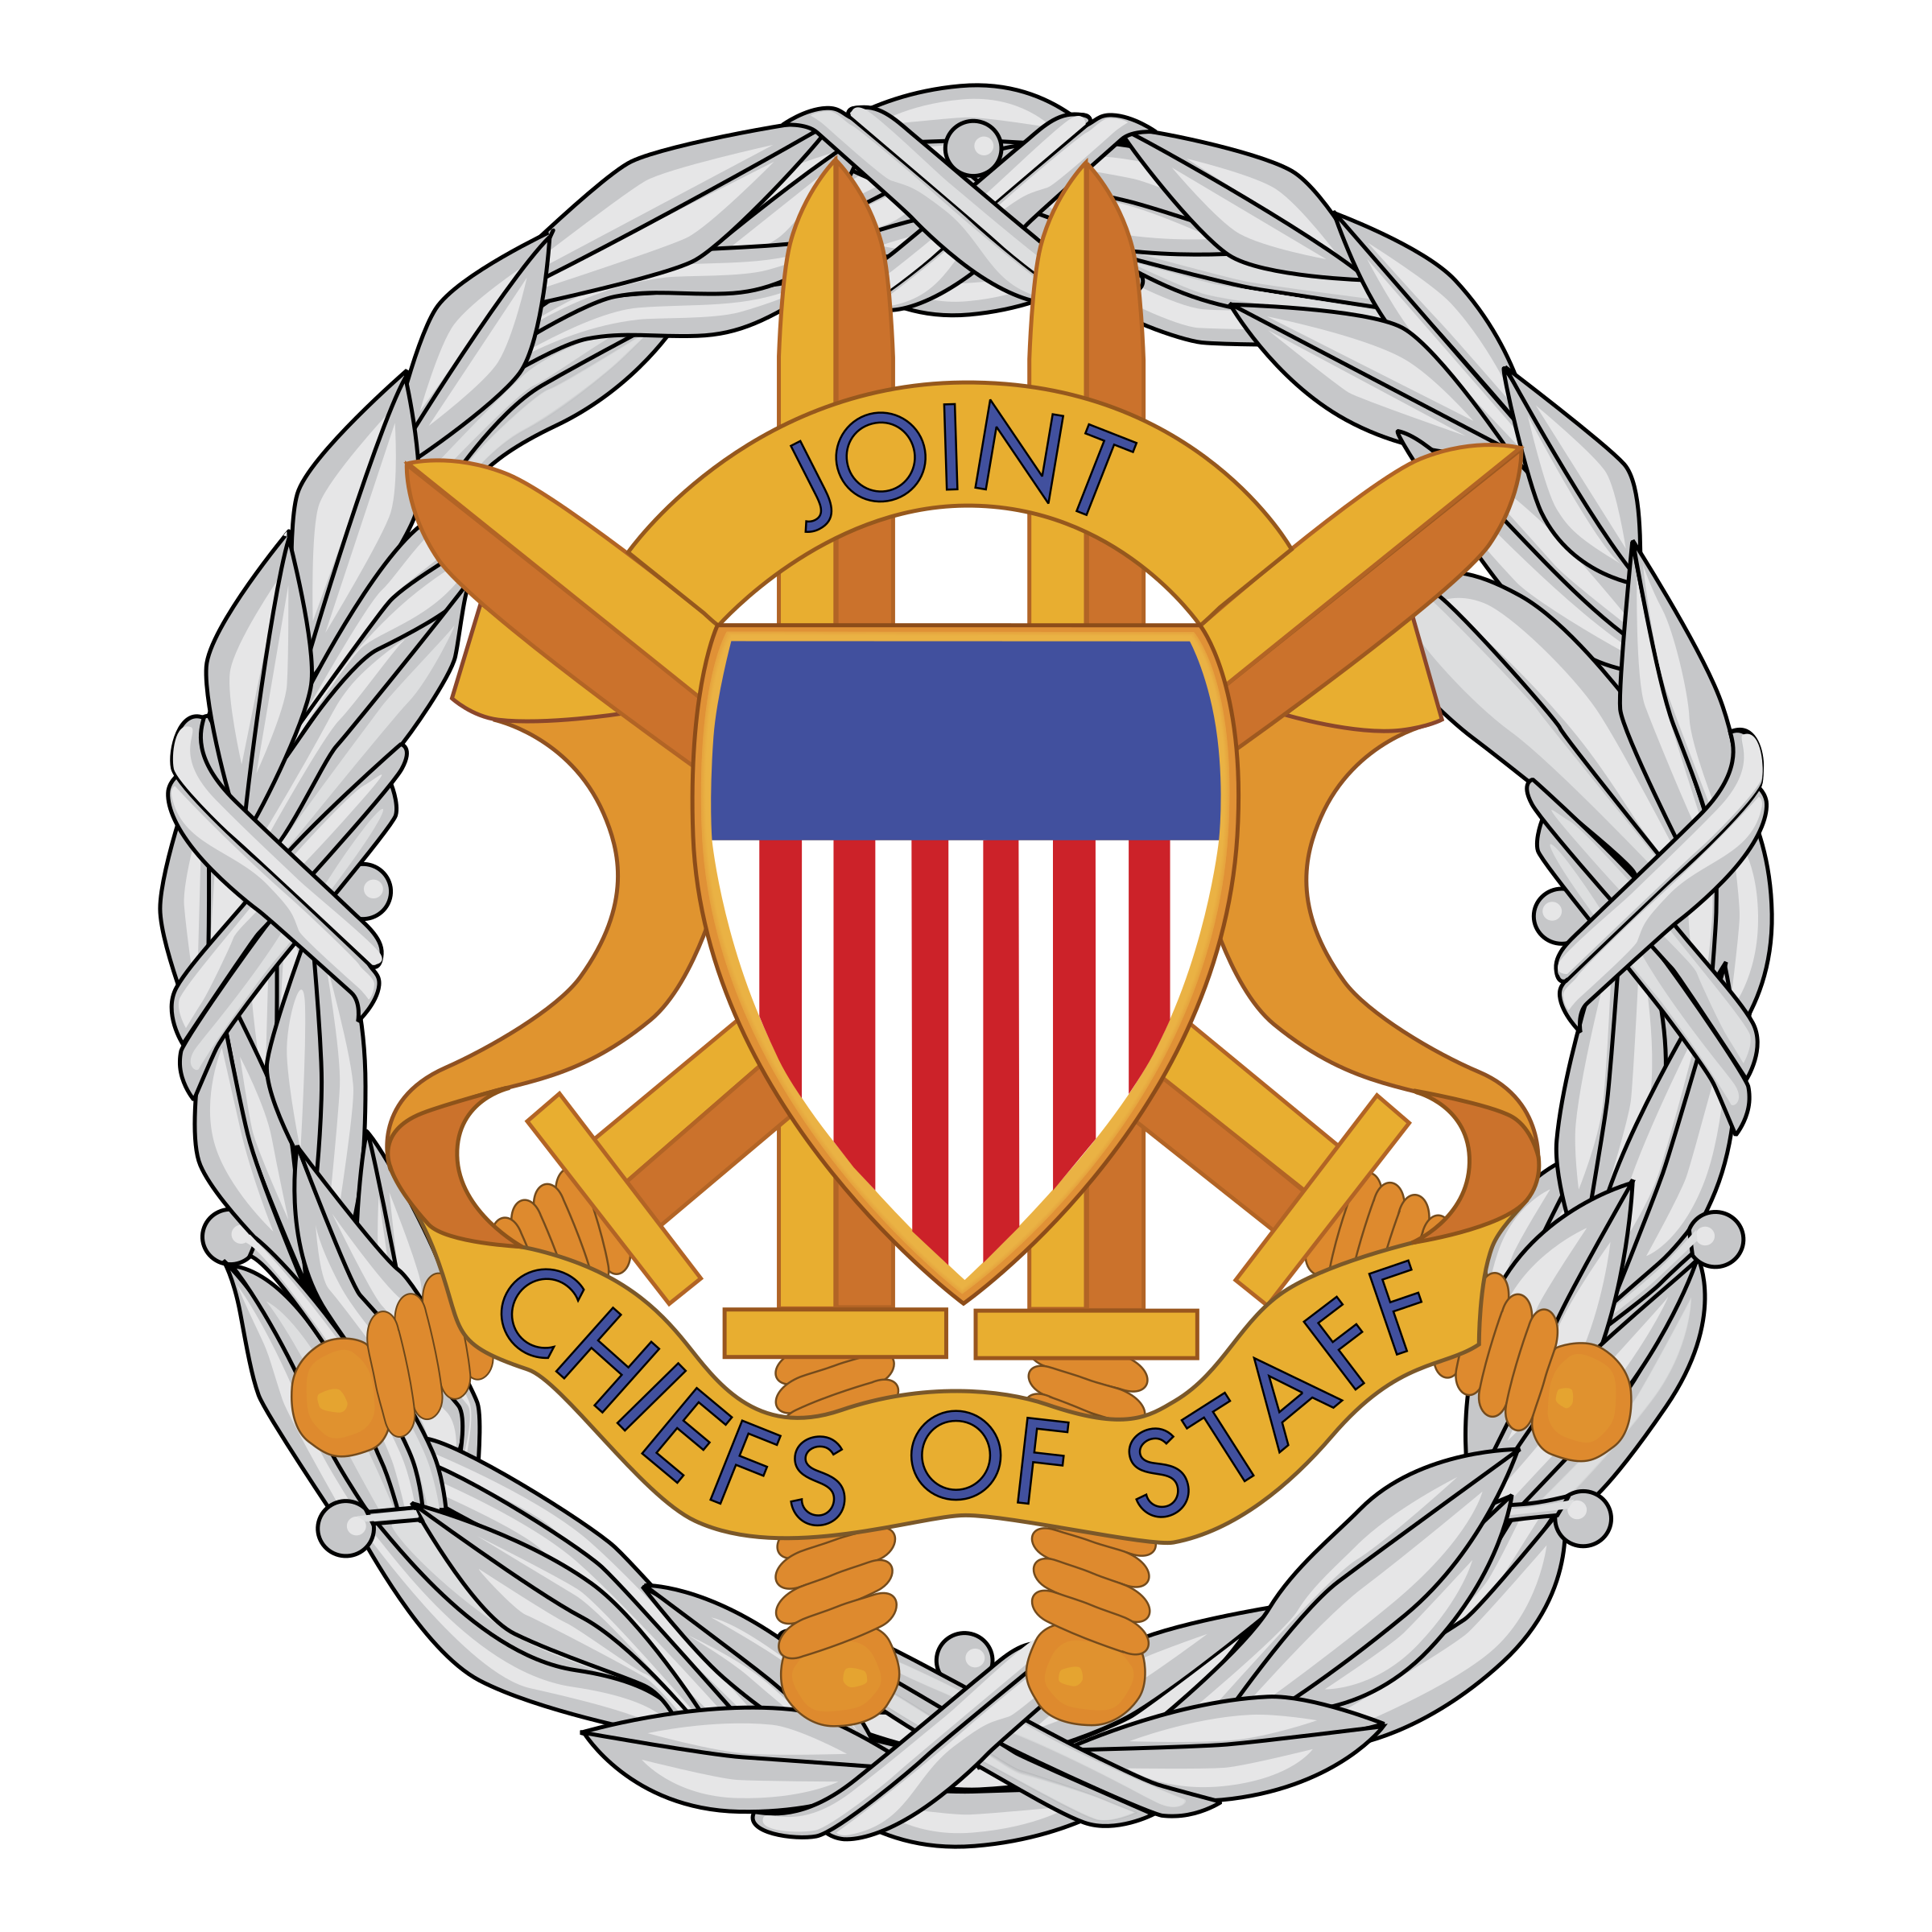 Joint Chiefs of Staff Logo PNG Transparent & SVG Vector ...